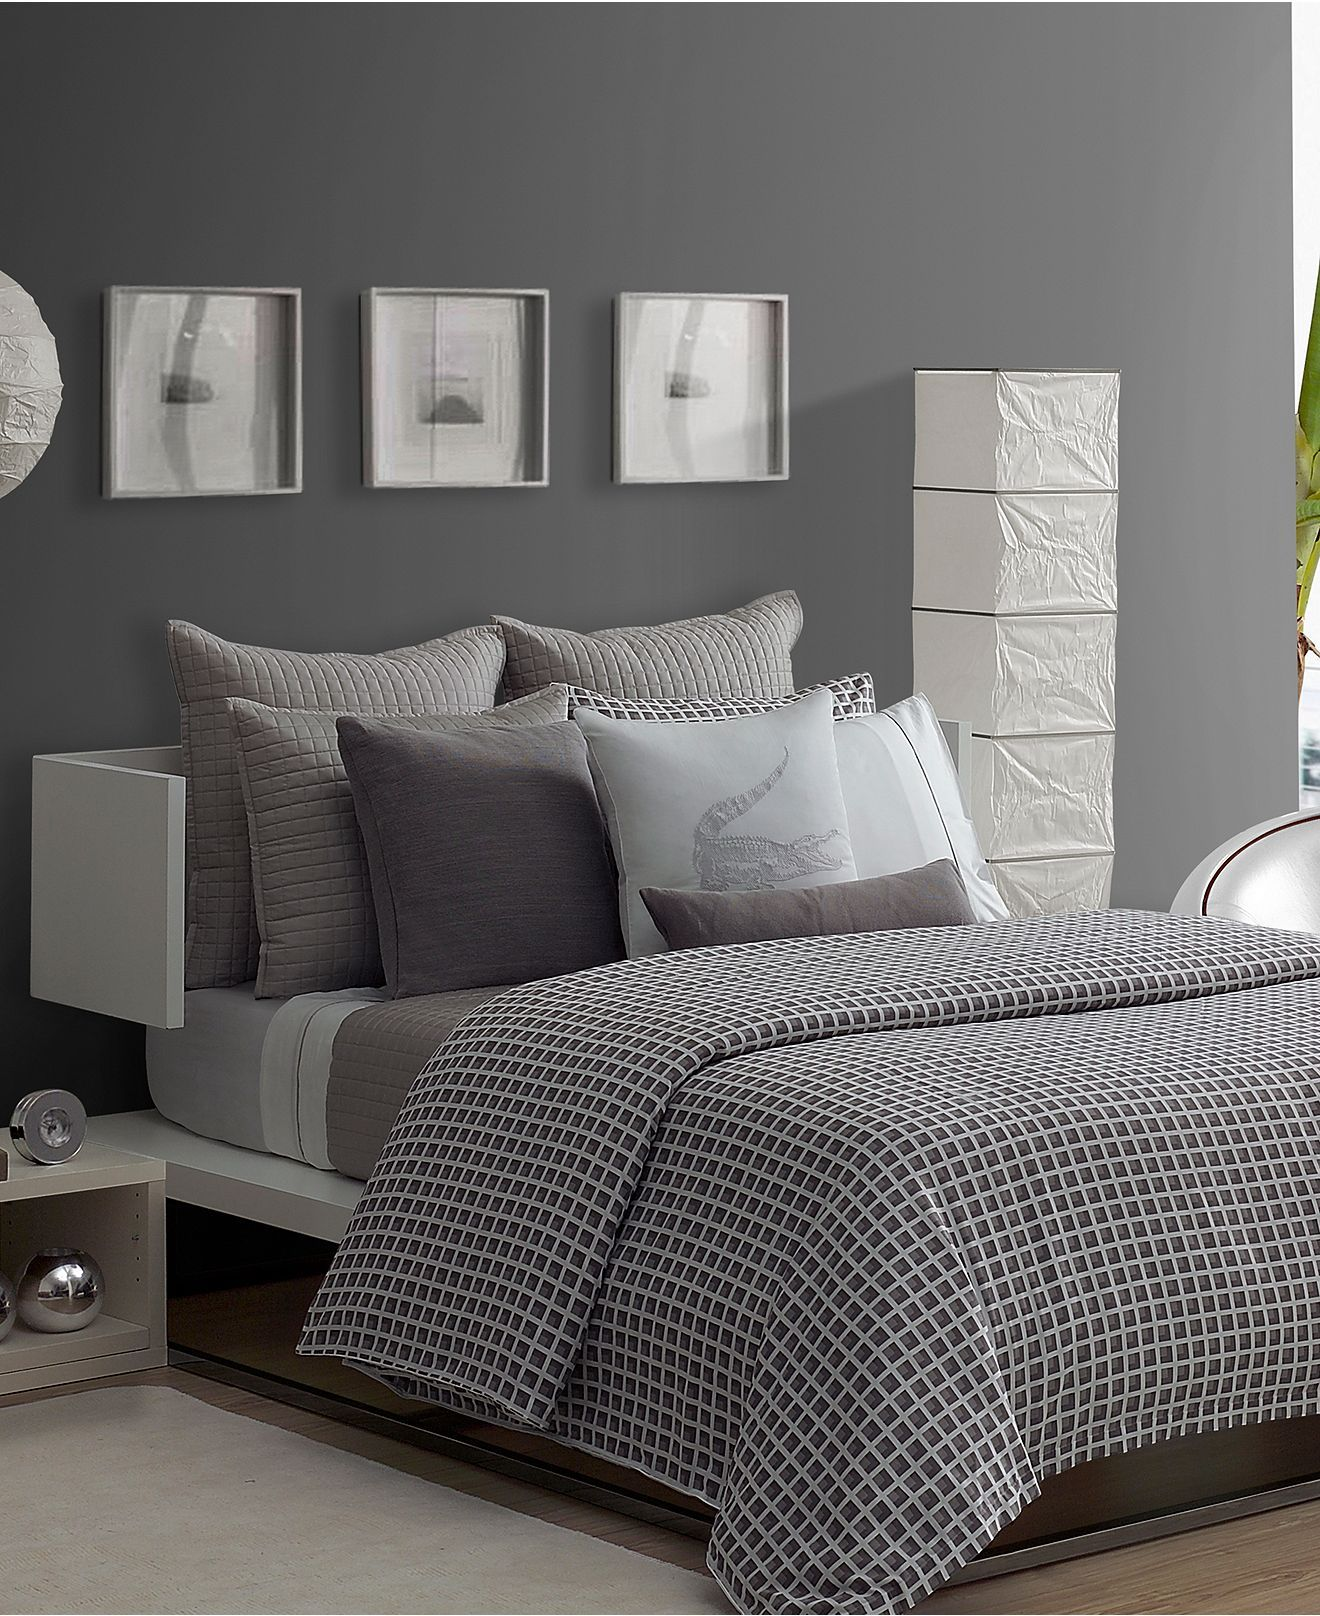 macys photos lacoste for gallery of secret duvet bedding set a weapon cover lostcoastshuttle